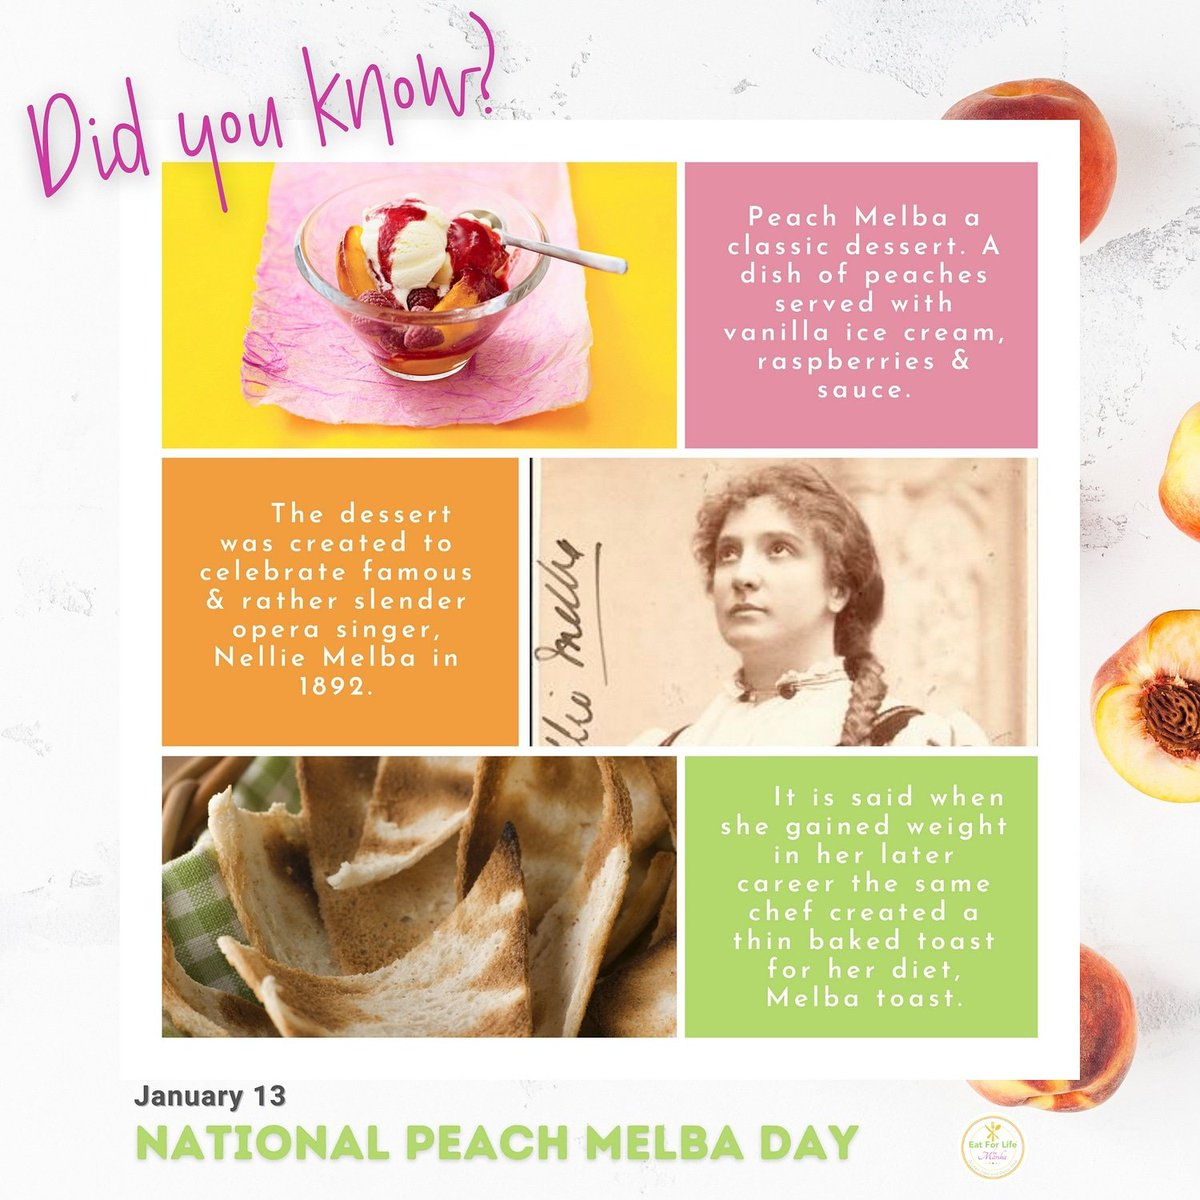 OMG! Now I know! Researched 🤓  #peachmelba for #nationalpeachmelbaday and very interesting! 😊🍑 so much #fun  . #eatforlifebymarsha #fooddays #nationalfooddays #peach #melba #fruit #dessert #peaches #peachy #peachlove #peachlovers #melbamoore #melbatoast #canadianfoodblogger